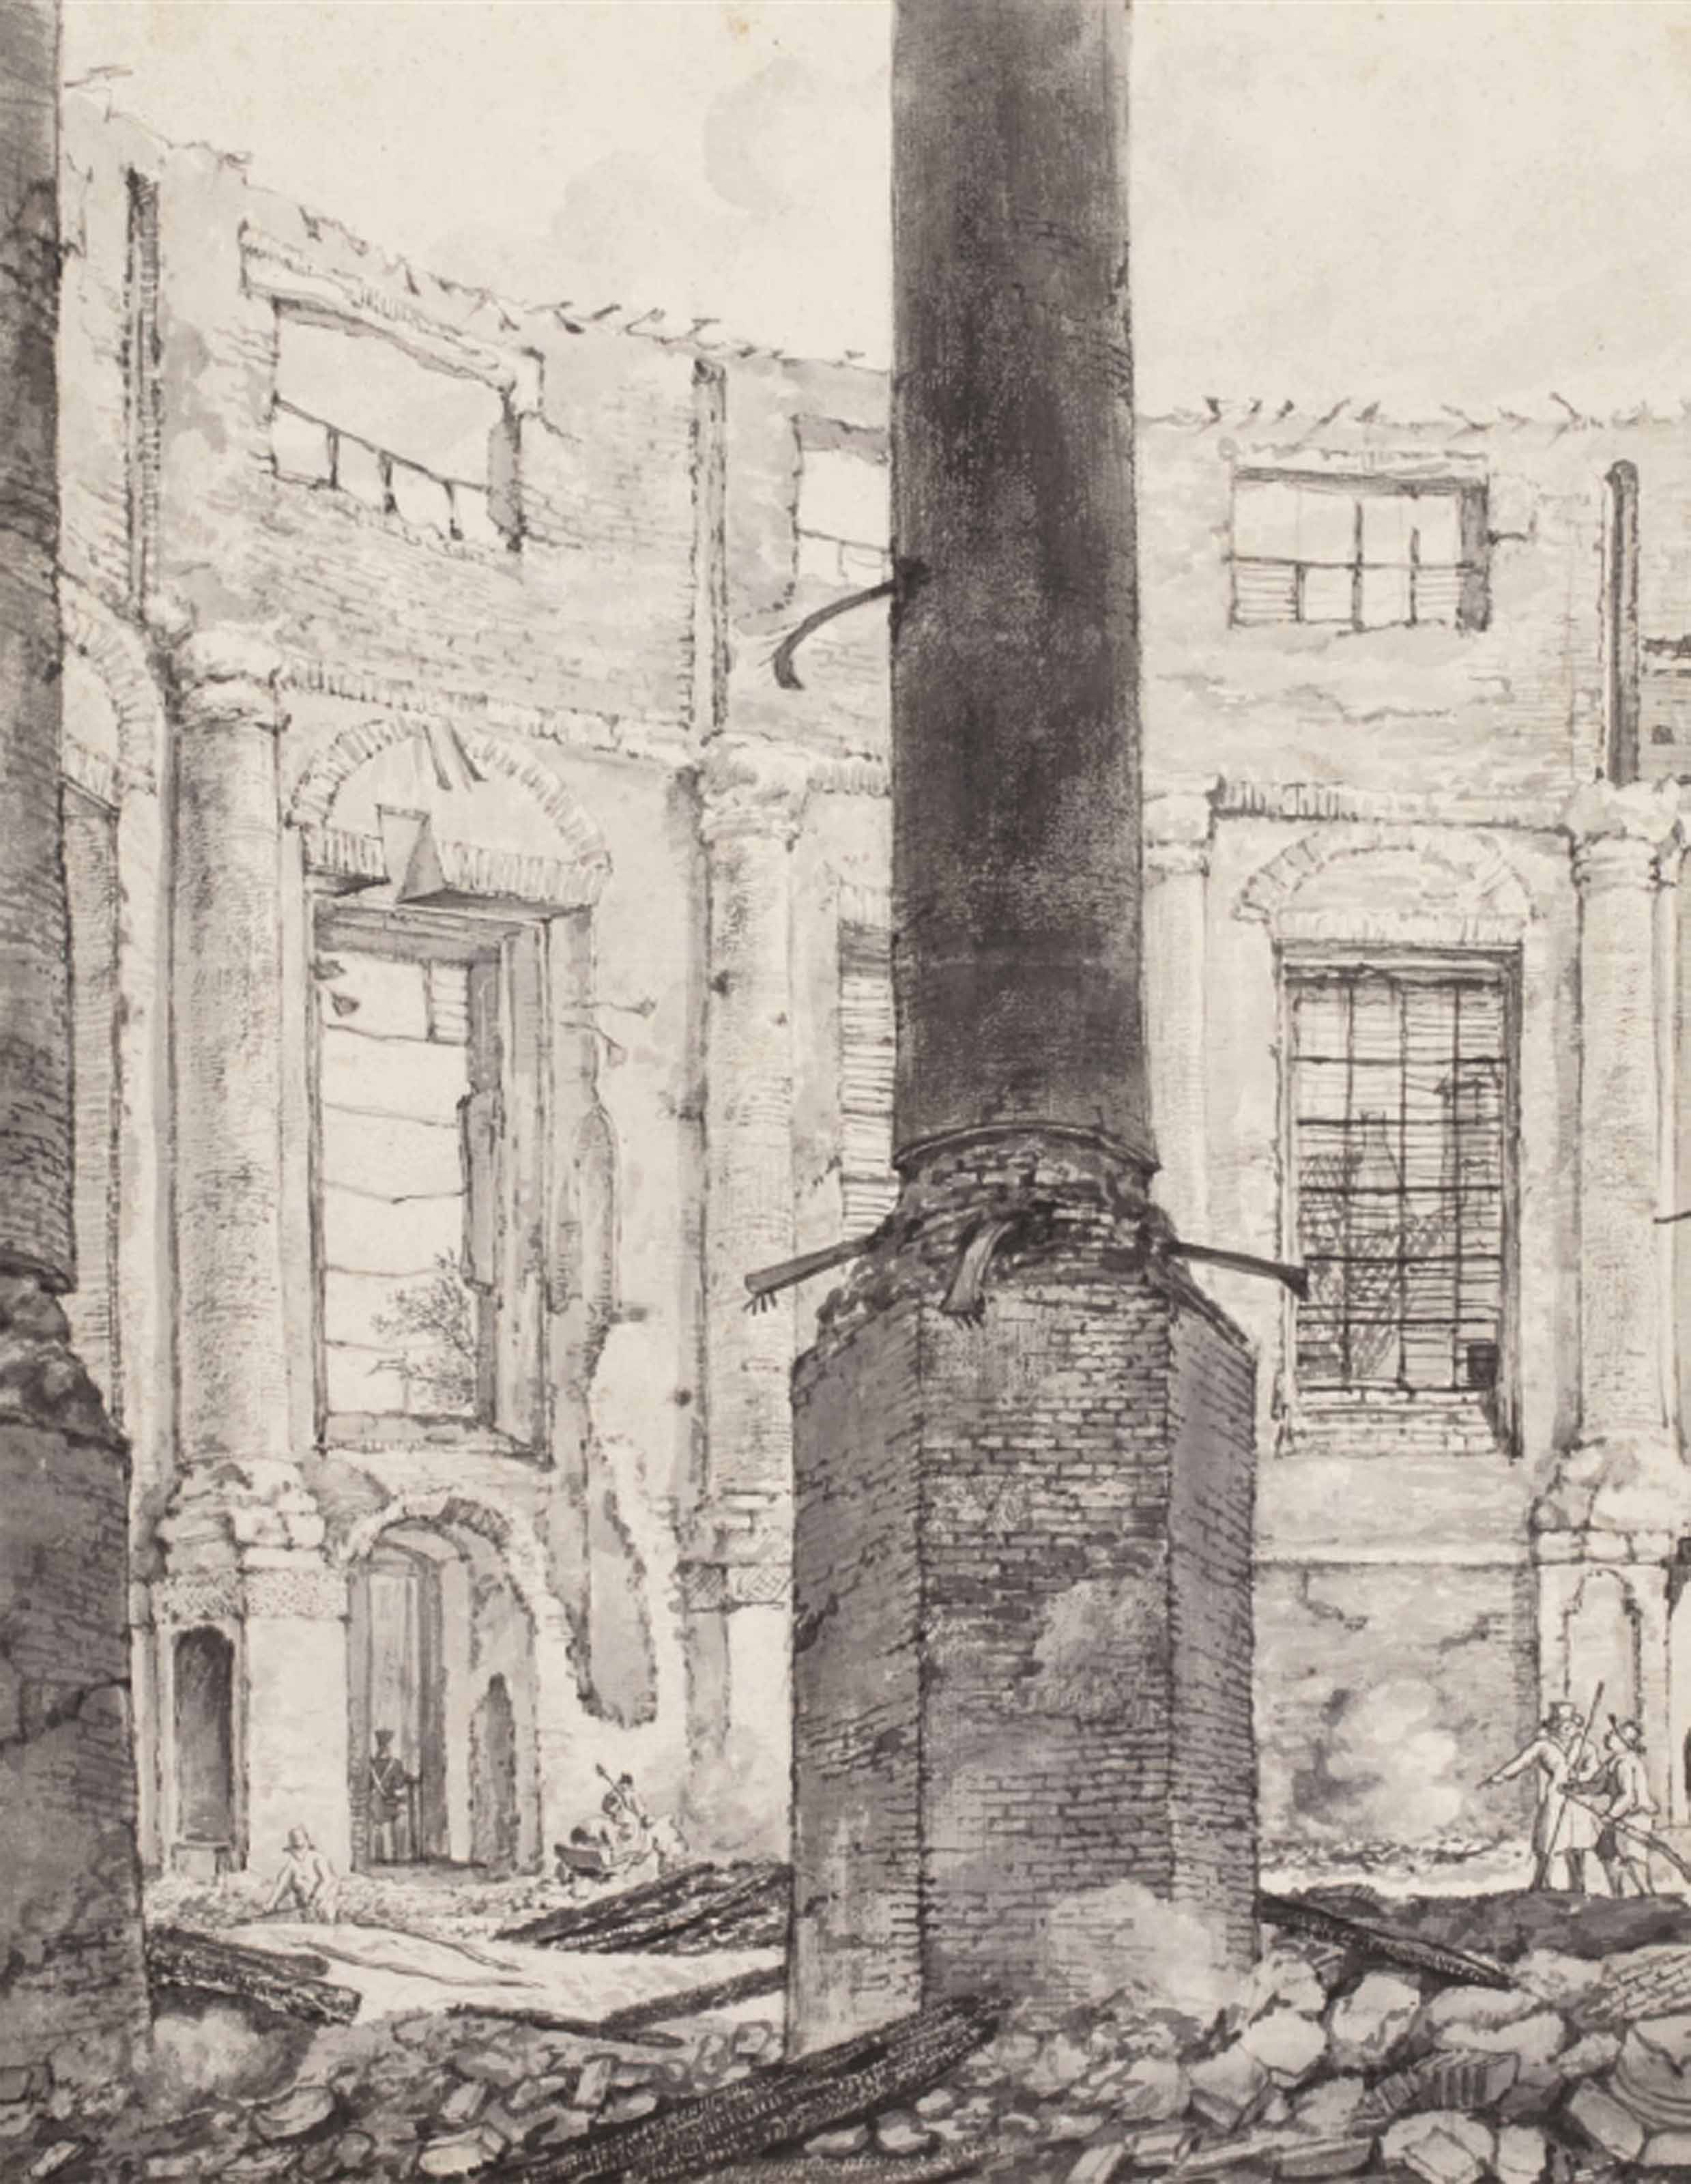 The ruins of the Lutheran Church, Amsterdam, after the fire of 1822, looking towards the organ-loft